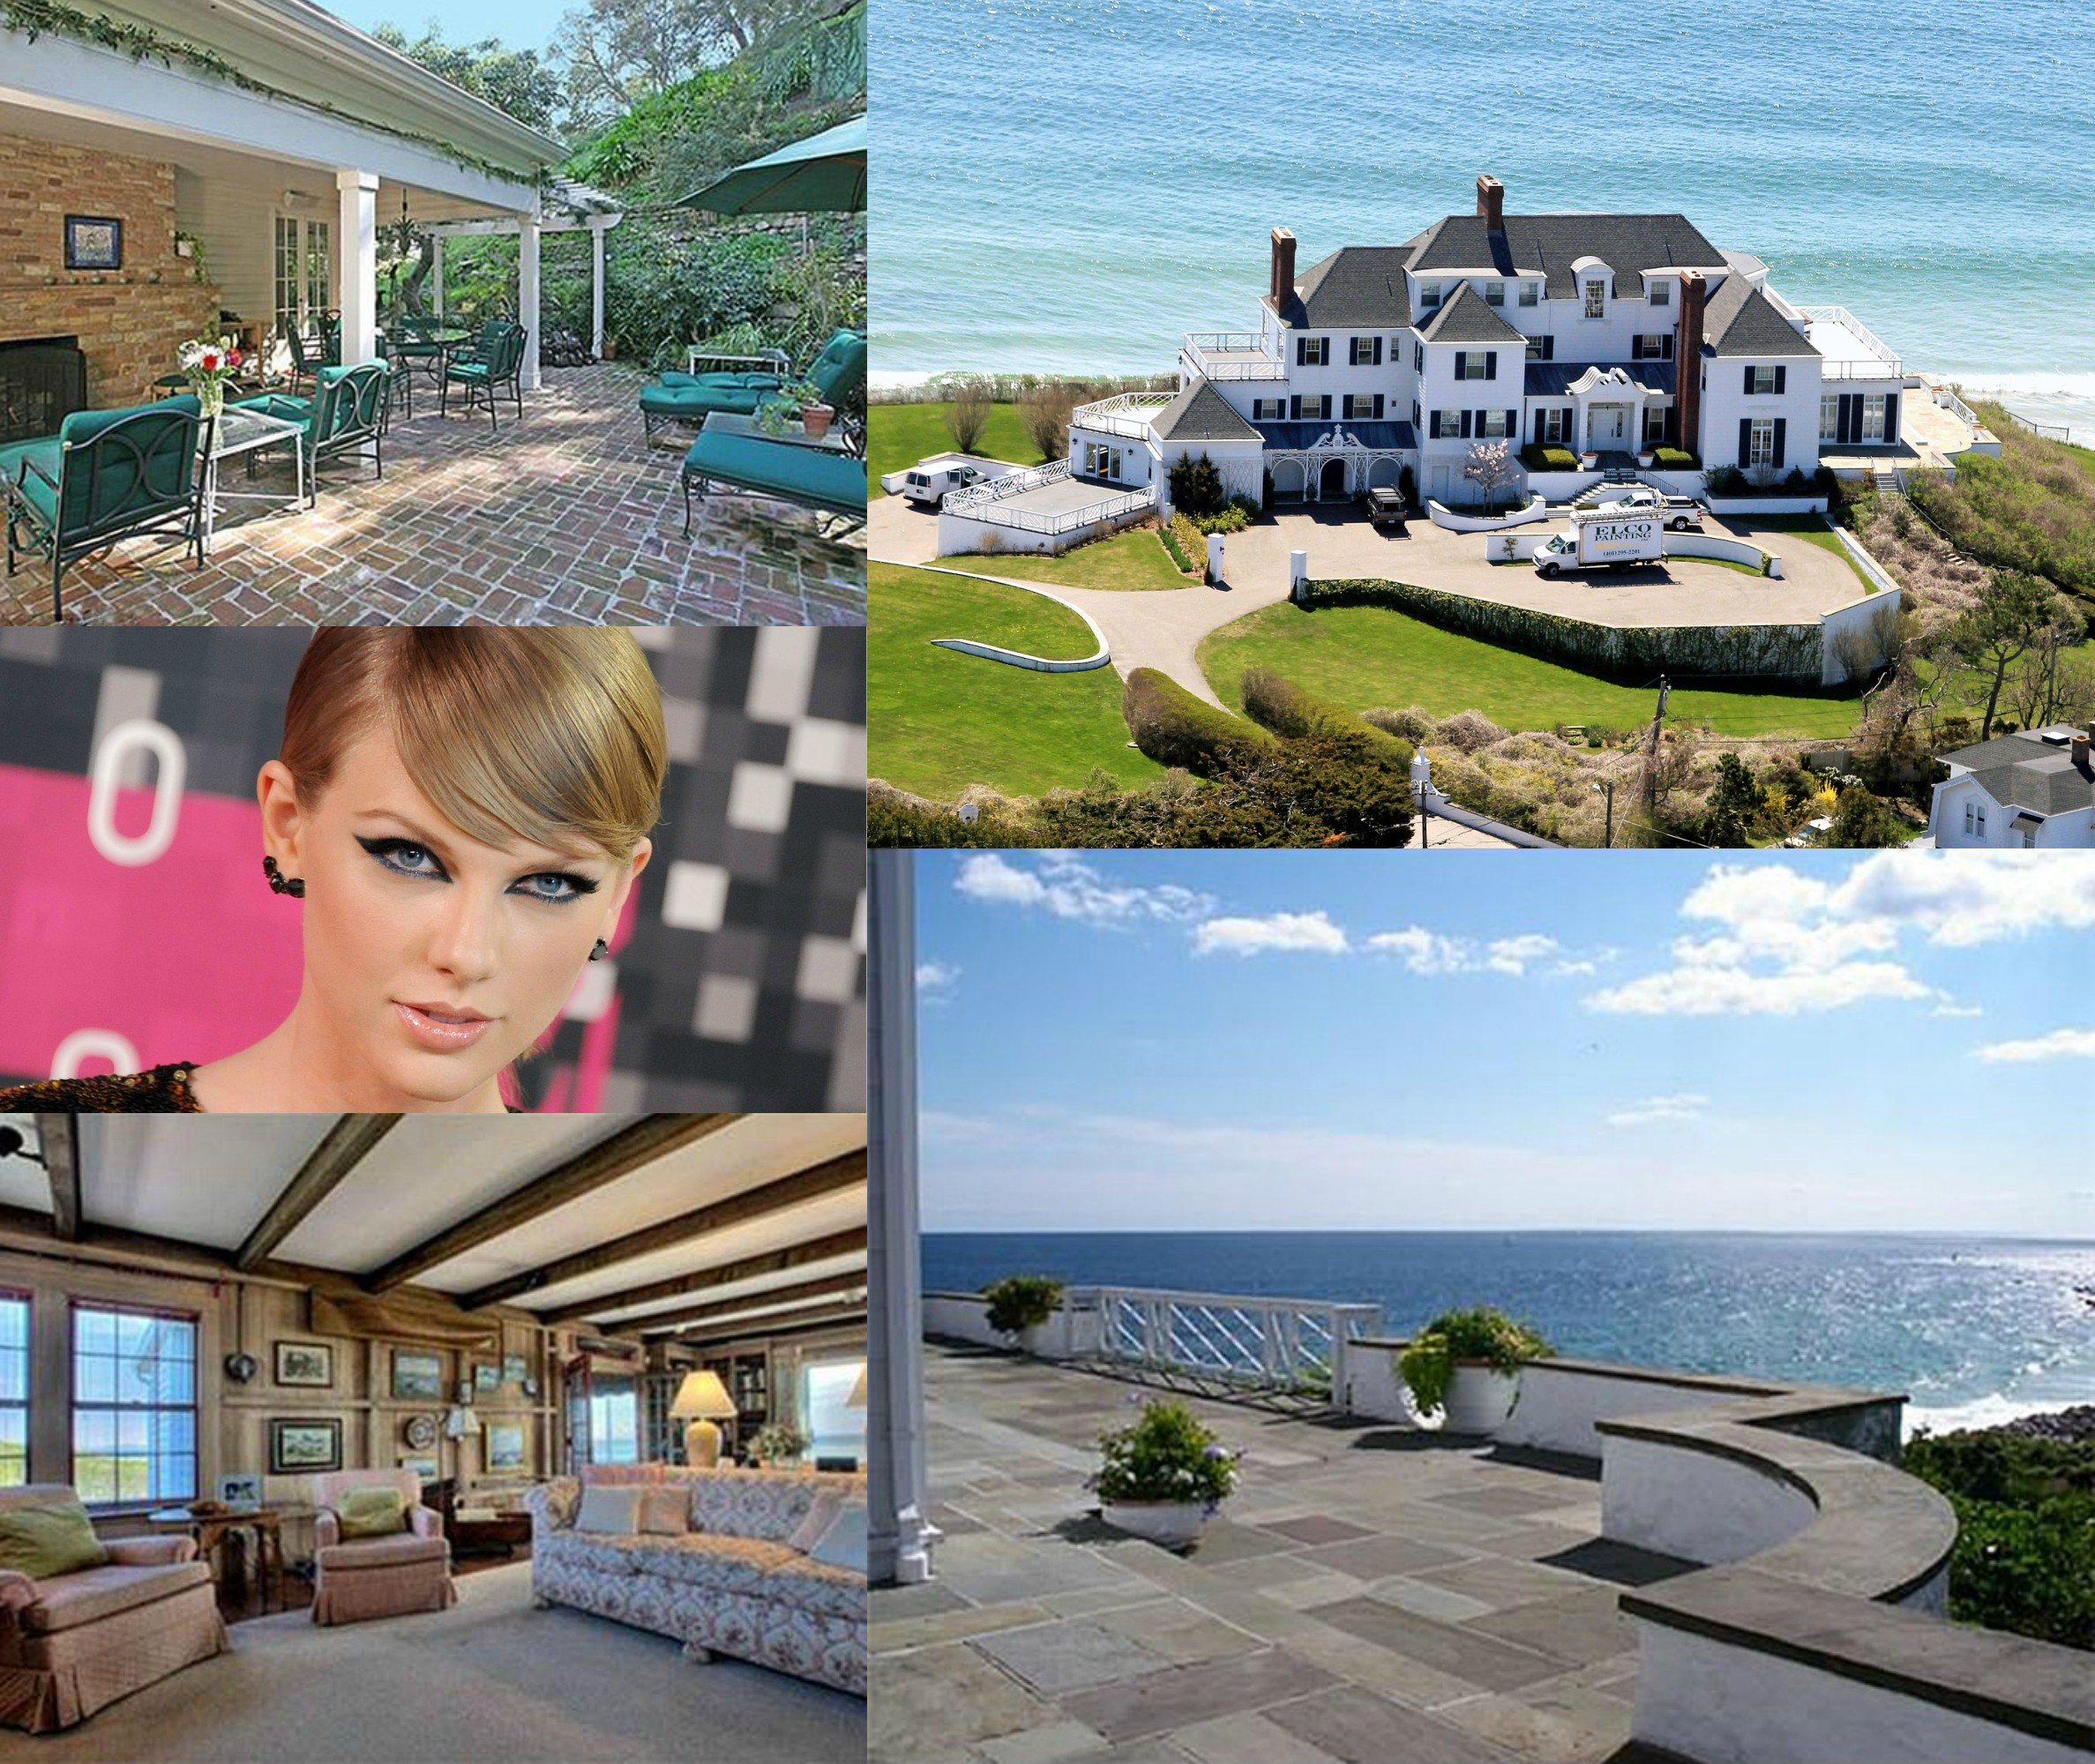 taylorswiftcollage